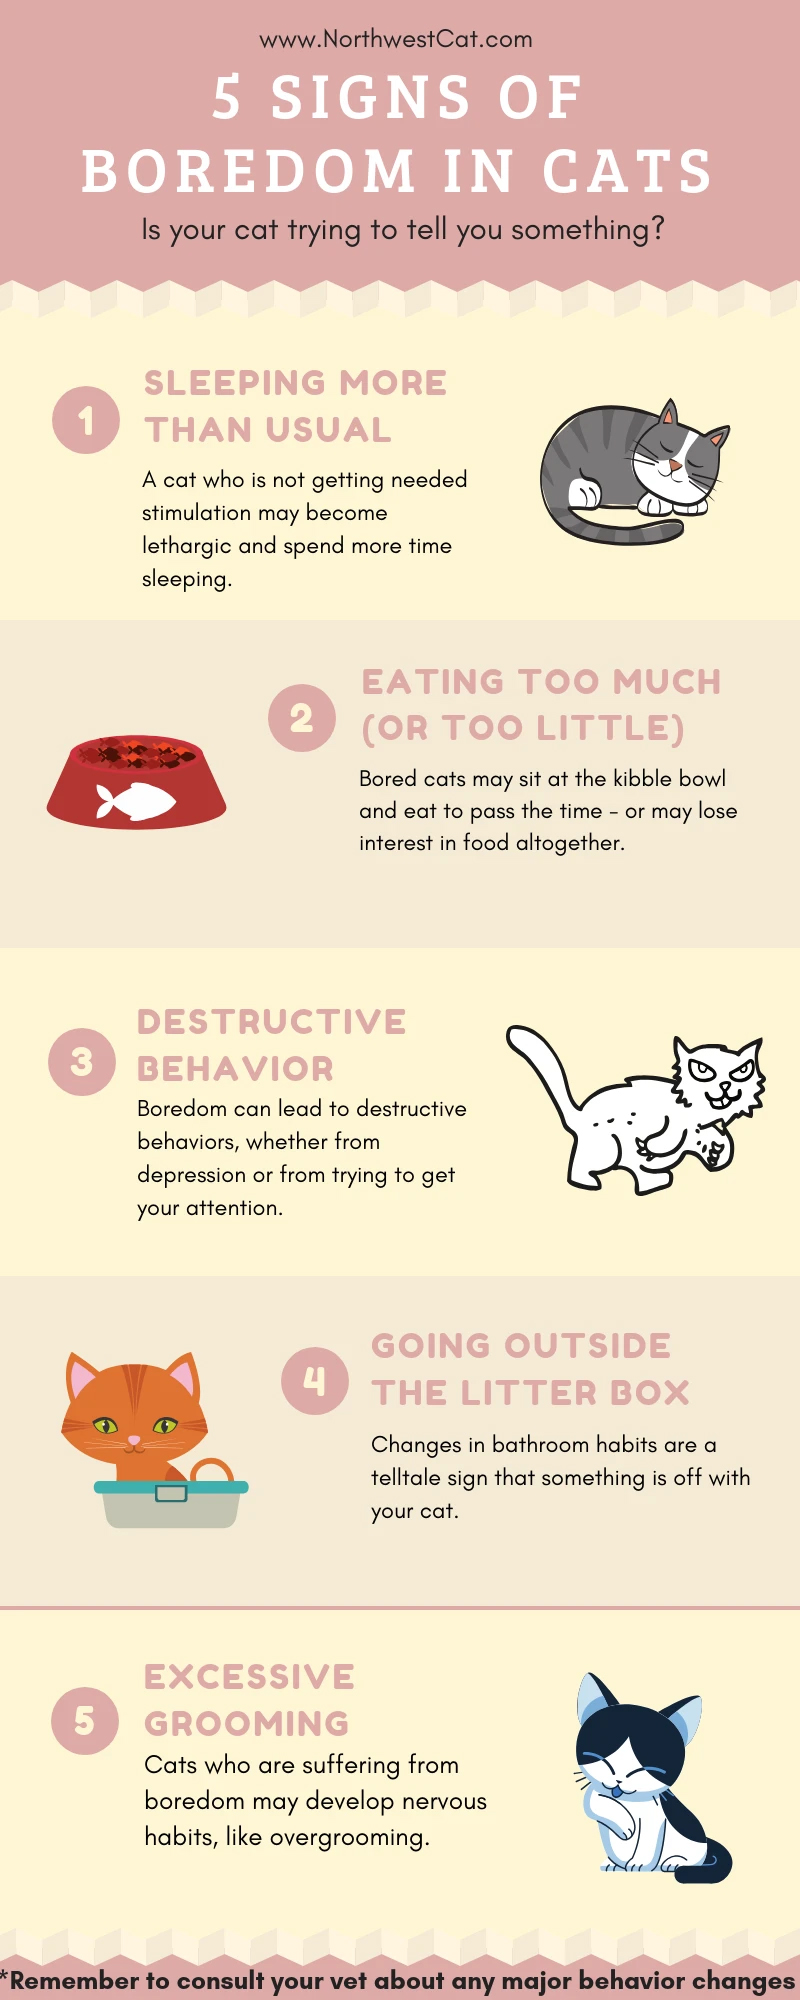 Is Your Cat Asking for Help? 5 Atypical Behavior Patterns - Infographic